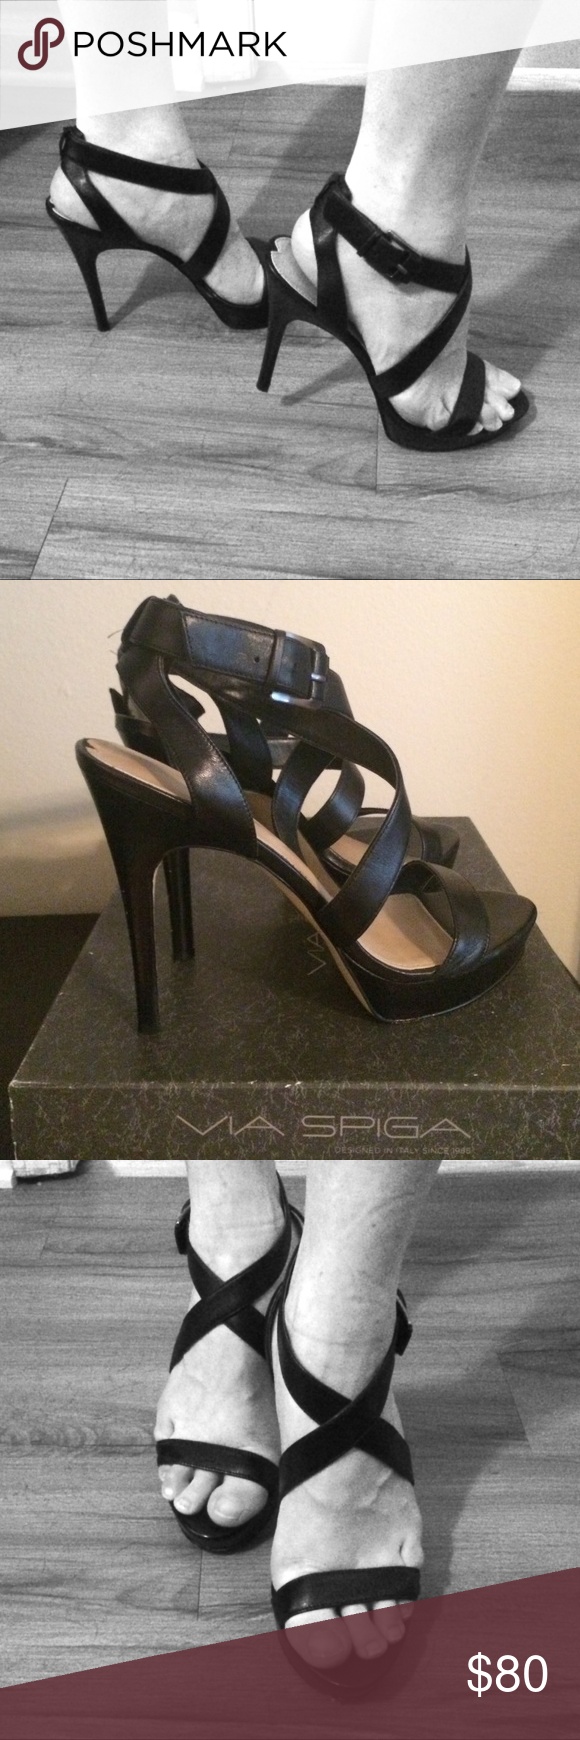 280370fd413 Via Spiga Black Strappy Platform Heels Love these shoes so sexy and fun.  For being a sexy shoe they are very comfortable to wear because if the  platform.